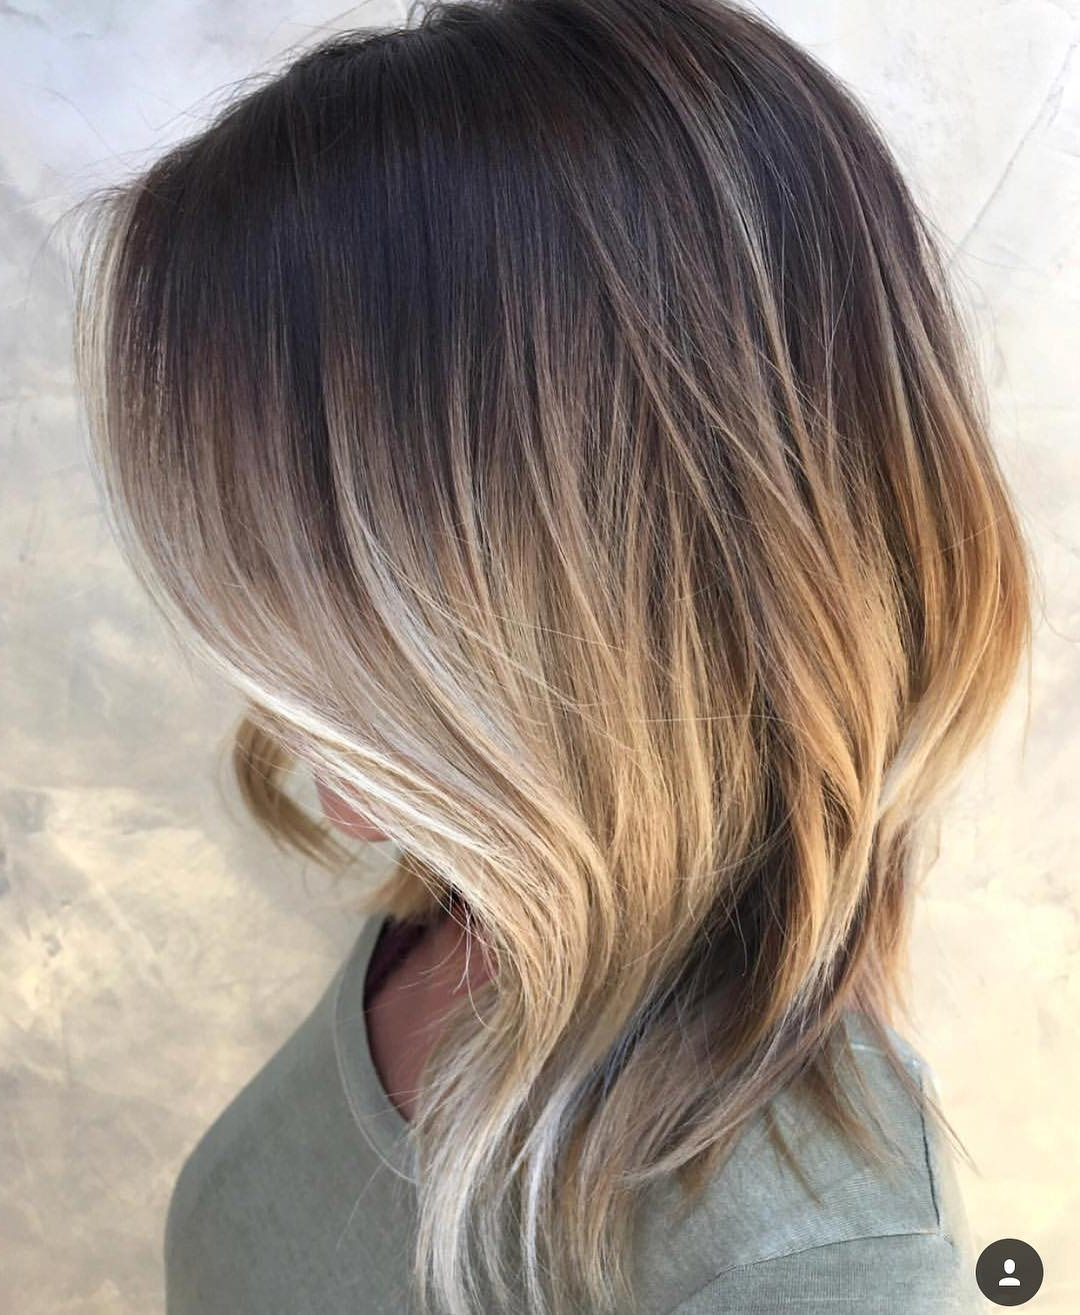 20 Fashionable Mid Length Hairstyles For Fall – Medium Hair Ideas In Well Known Fall Medium Hairstyles (View 2 of 20)